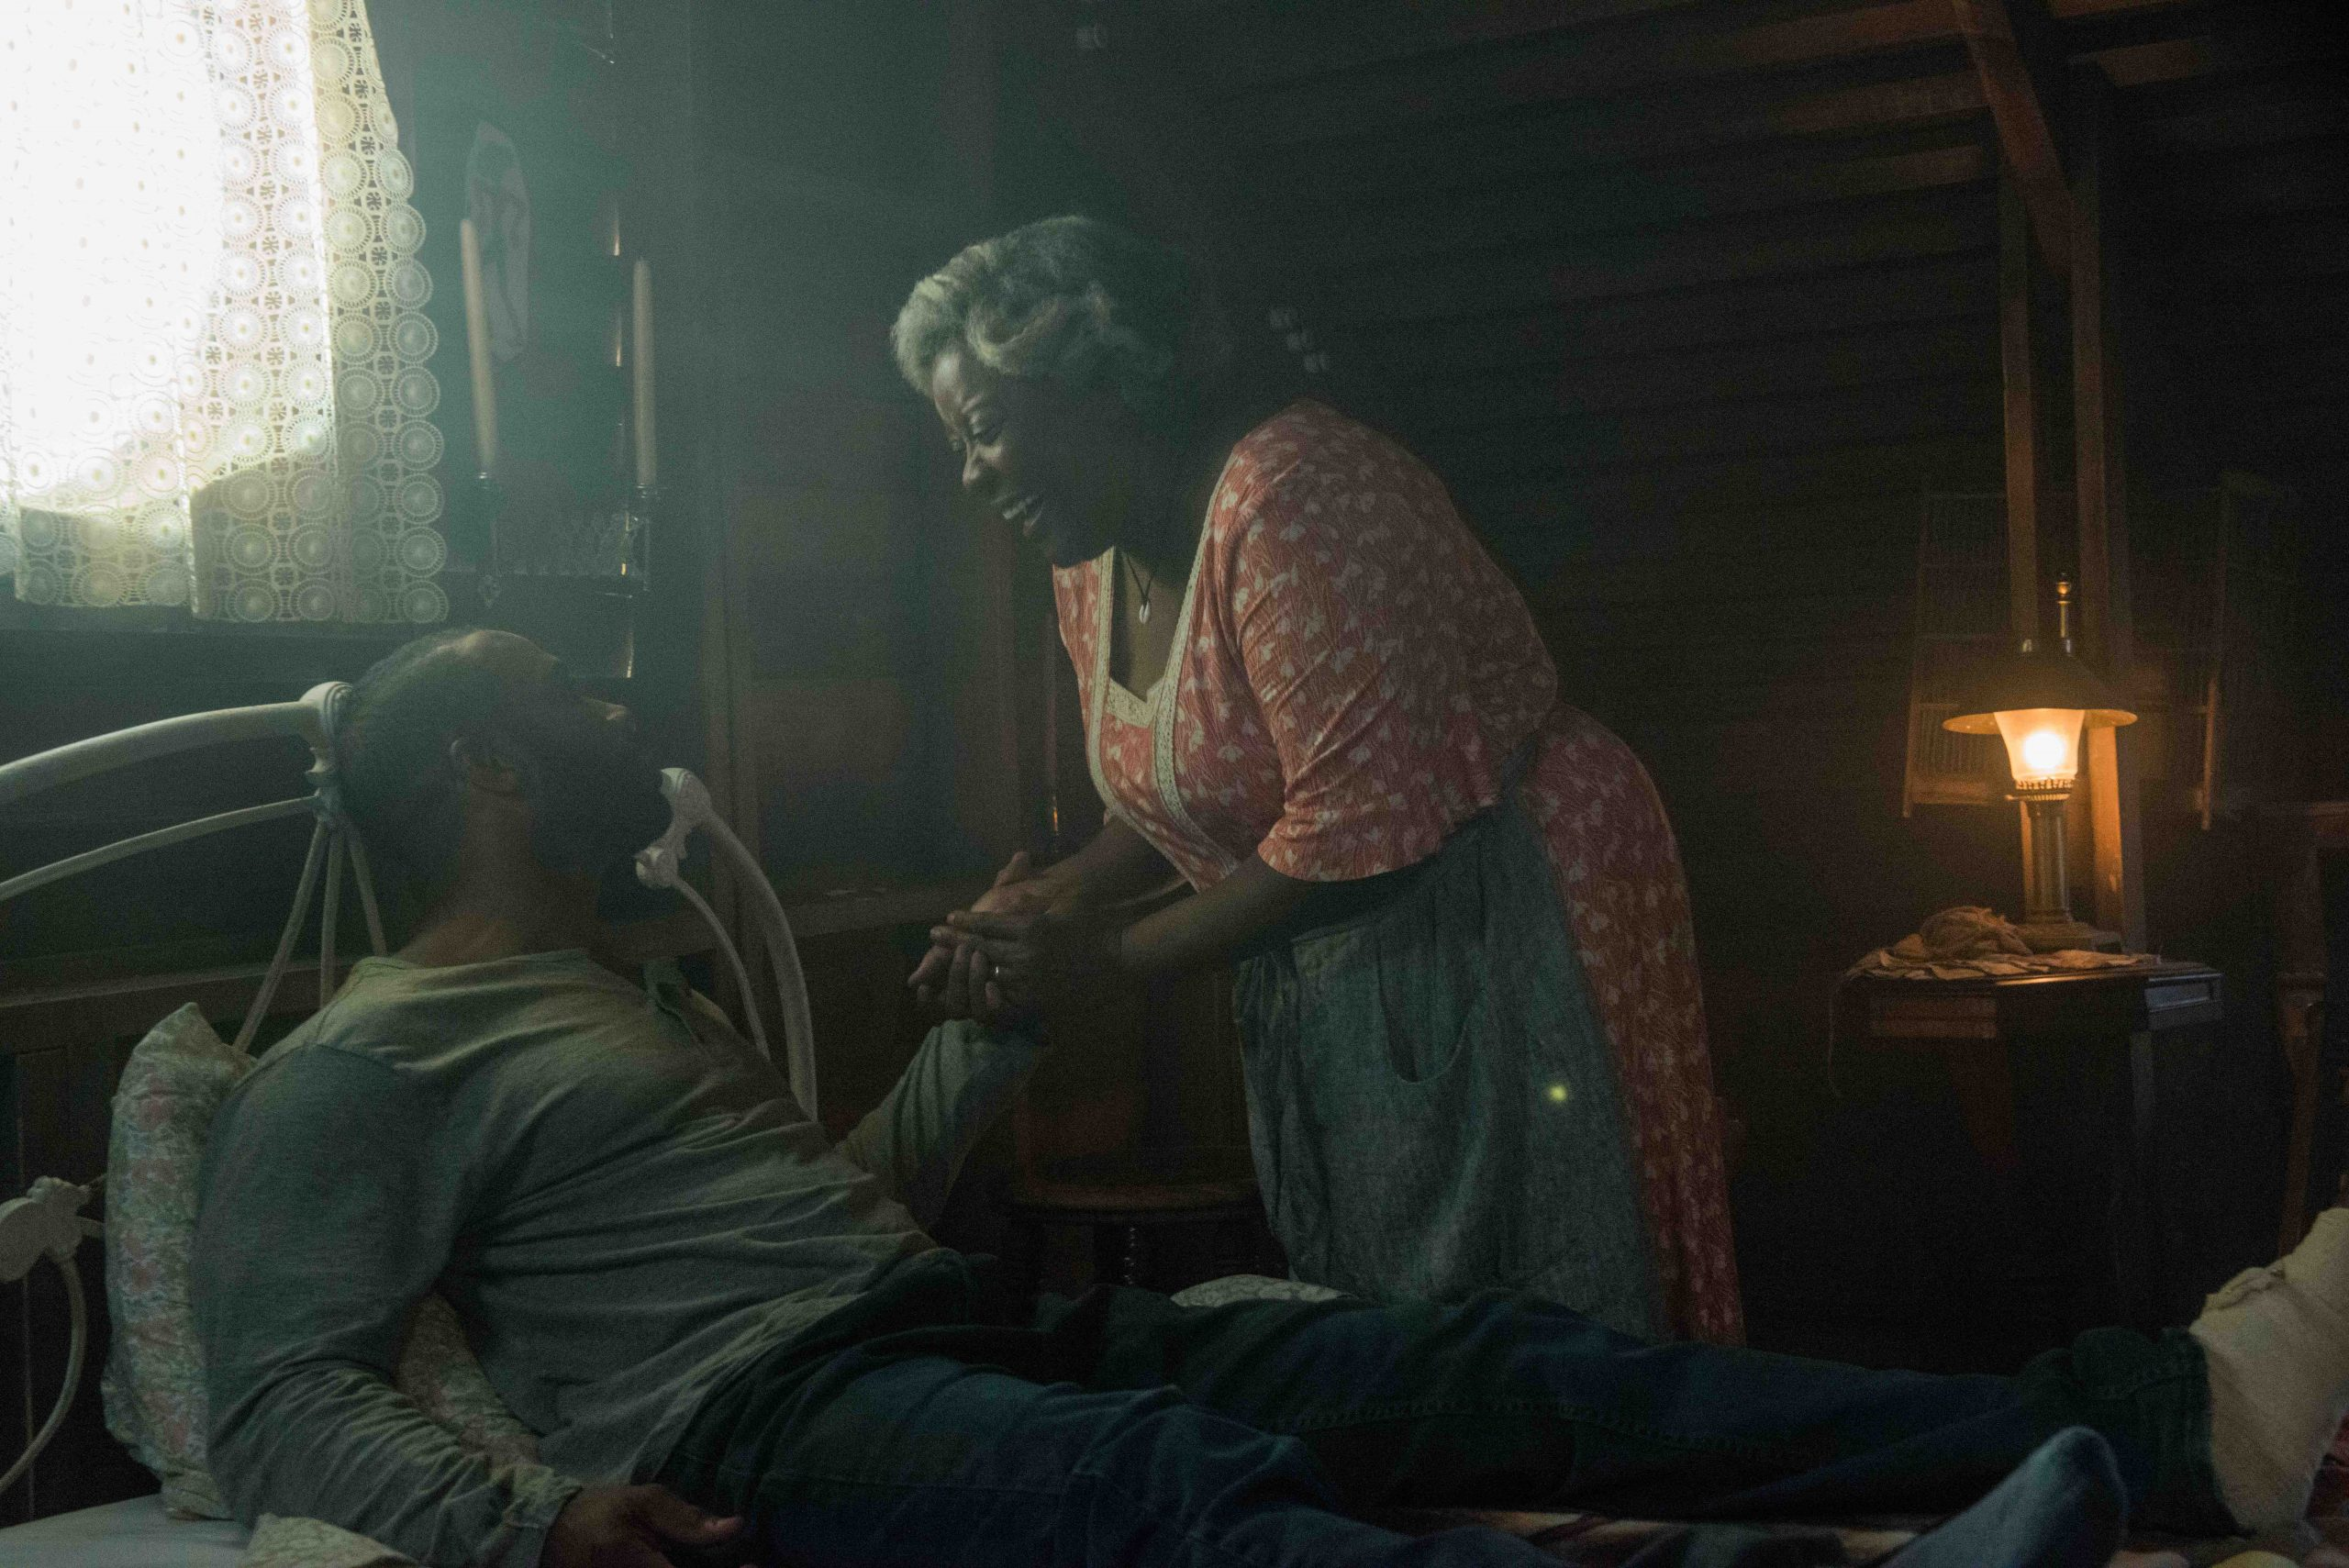 Director Mark Tonderai On Exploring Black Rage in 'Spell' - Awardsdaily - The Oscars, the Films and everything in between.